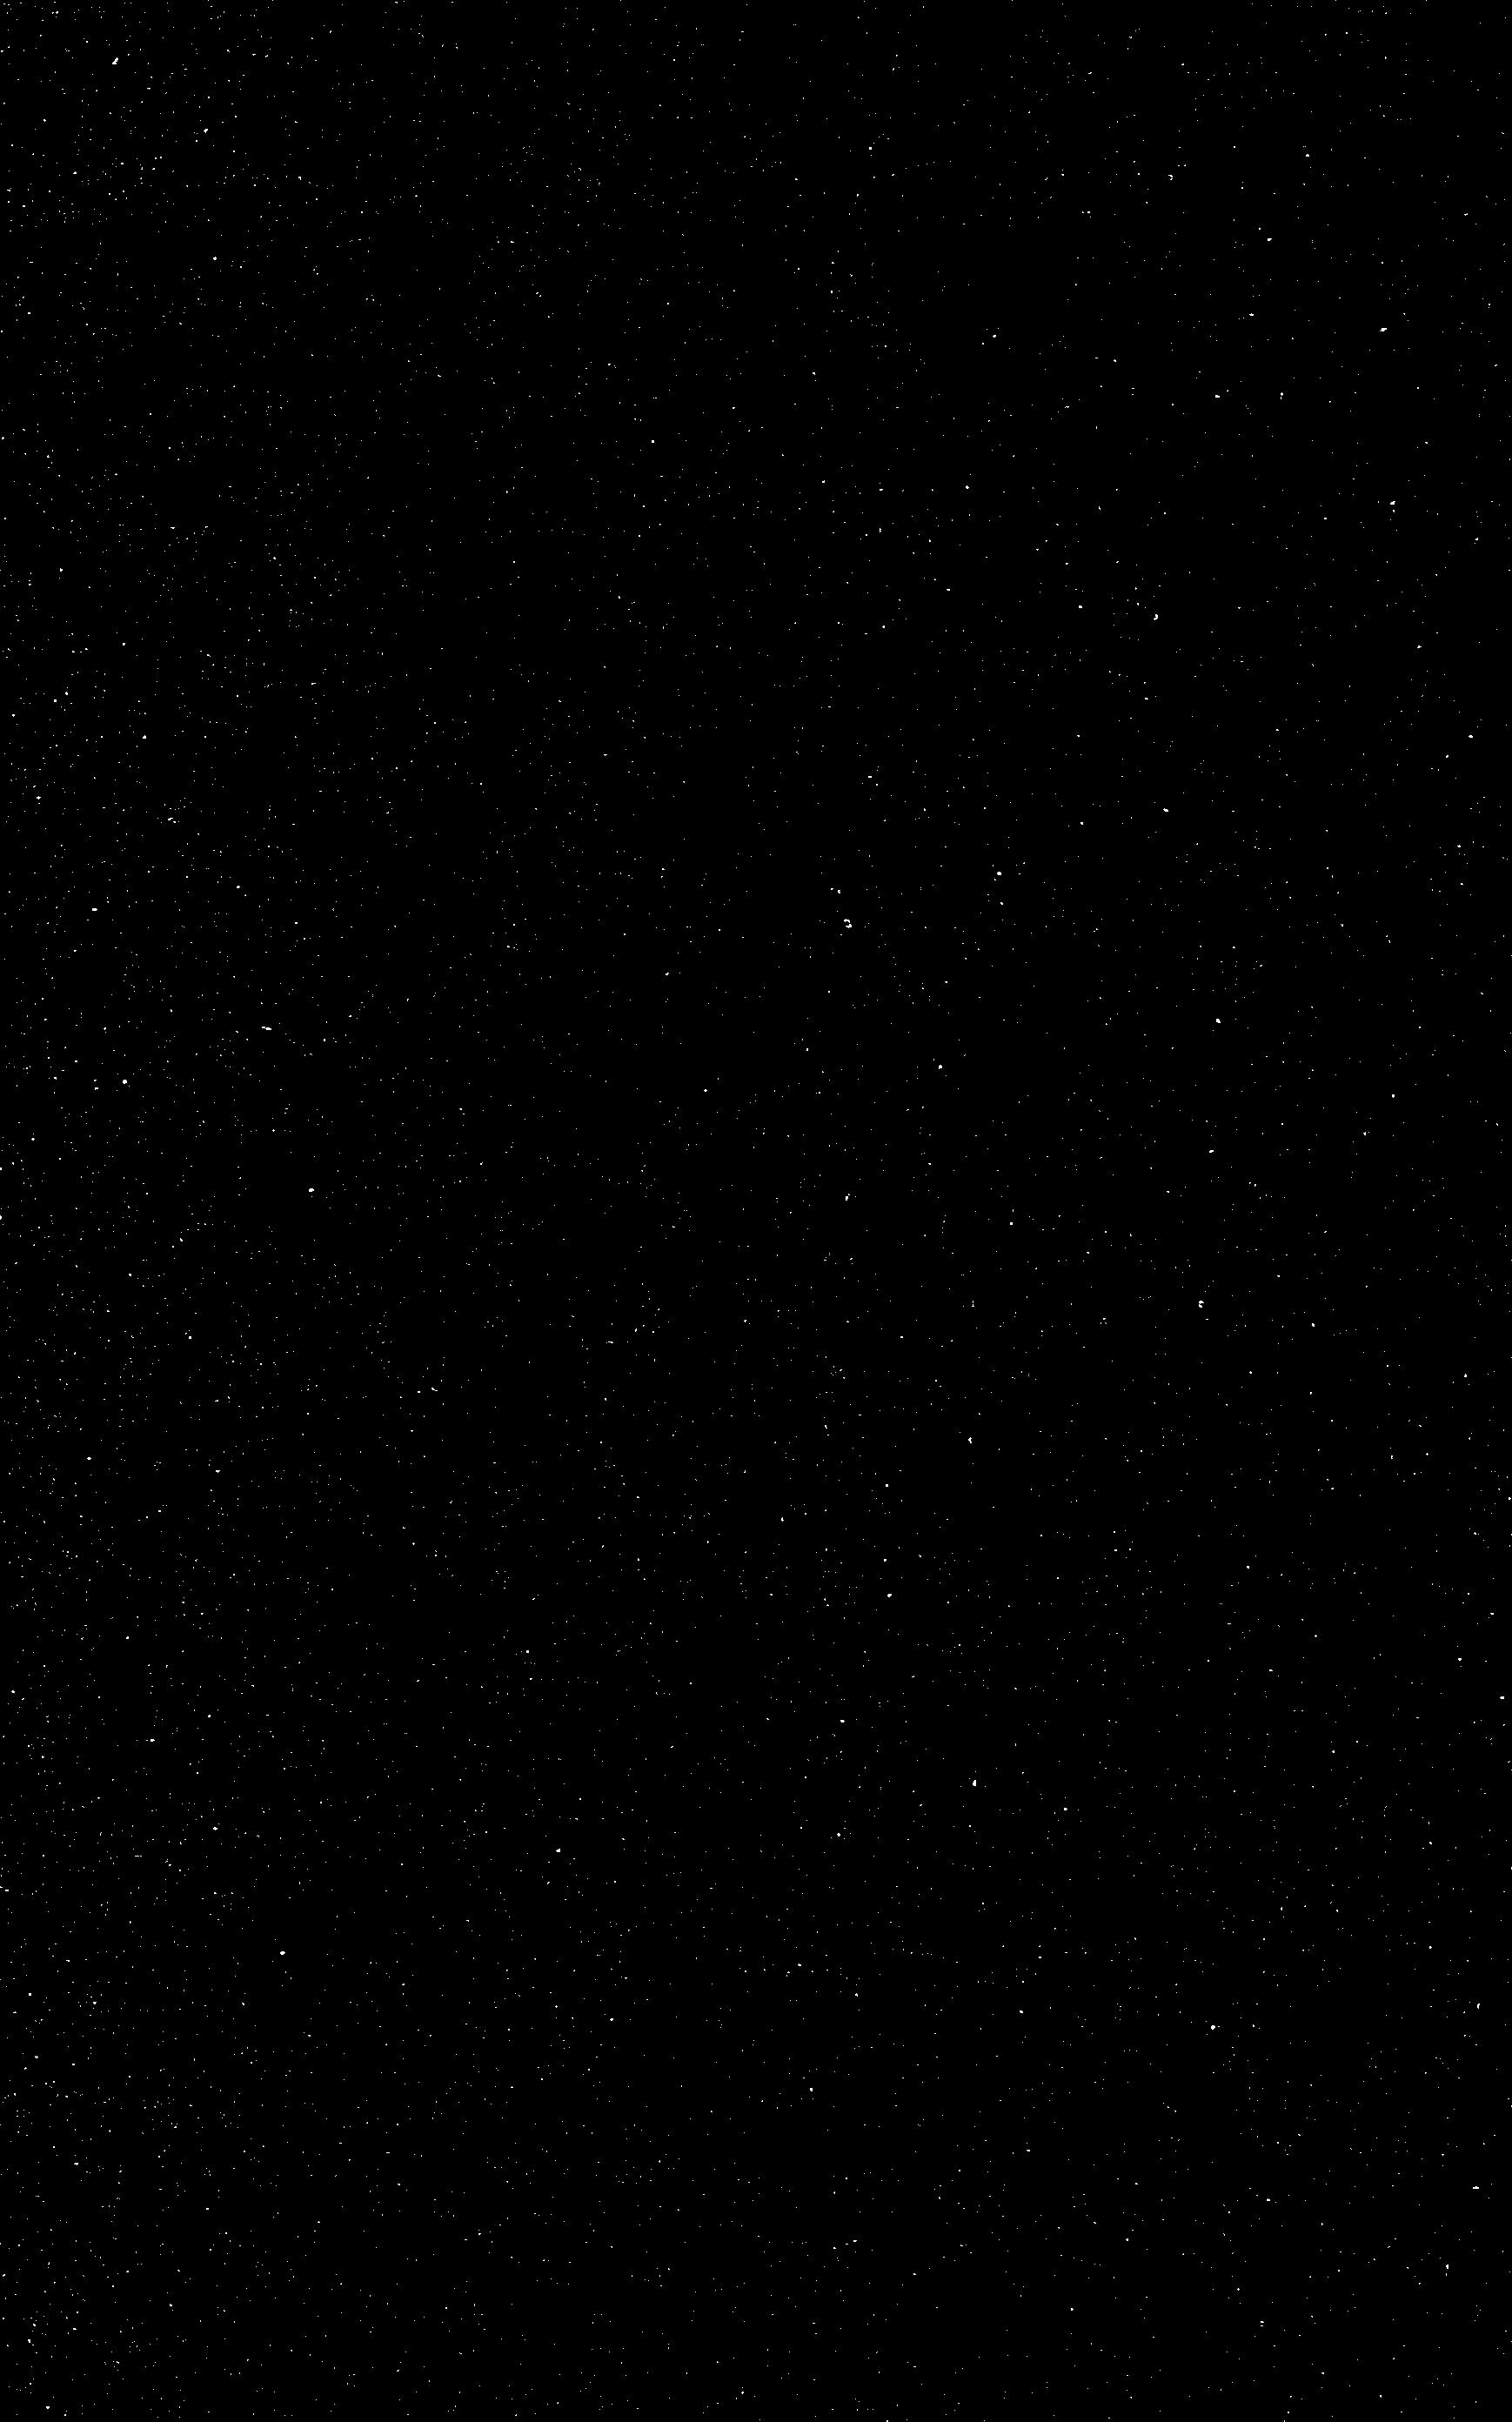 Cover of: The law of development revealing the way to the harmony and unity of divine wisdom and love